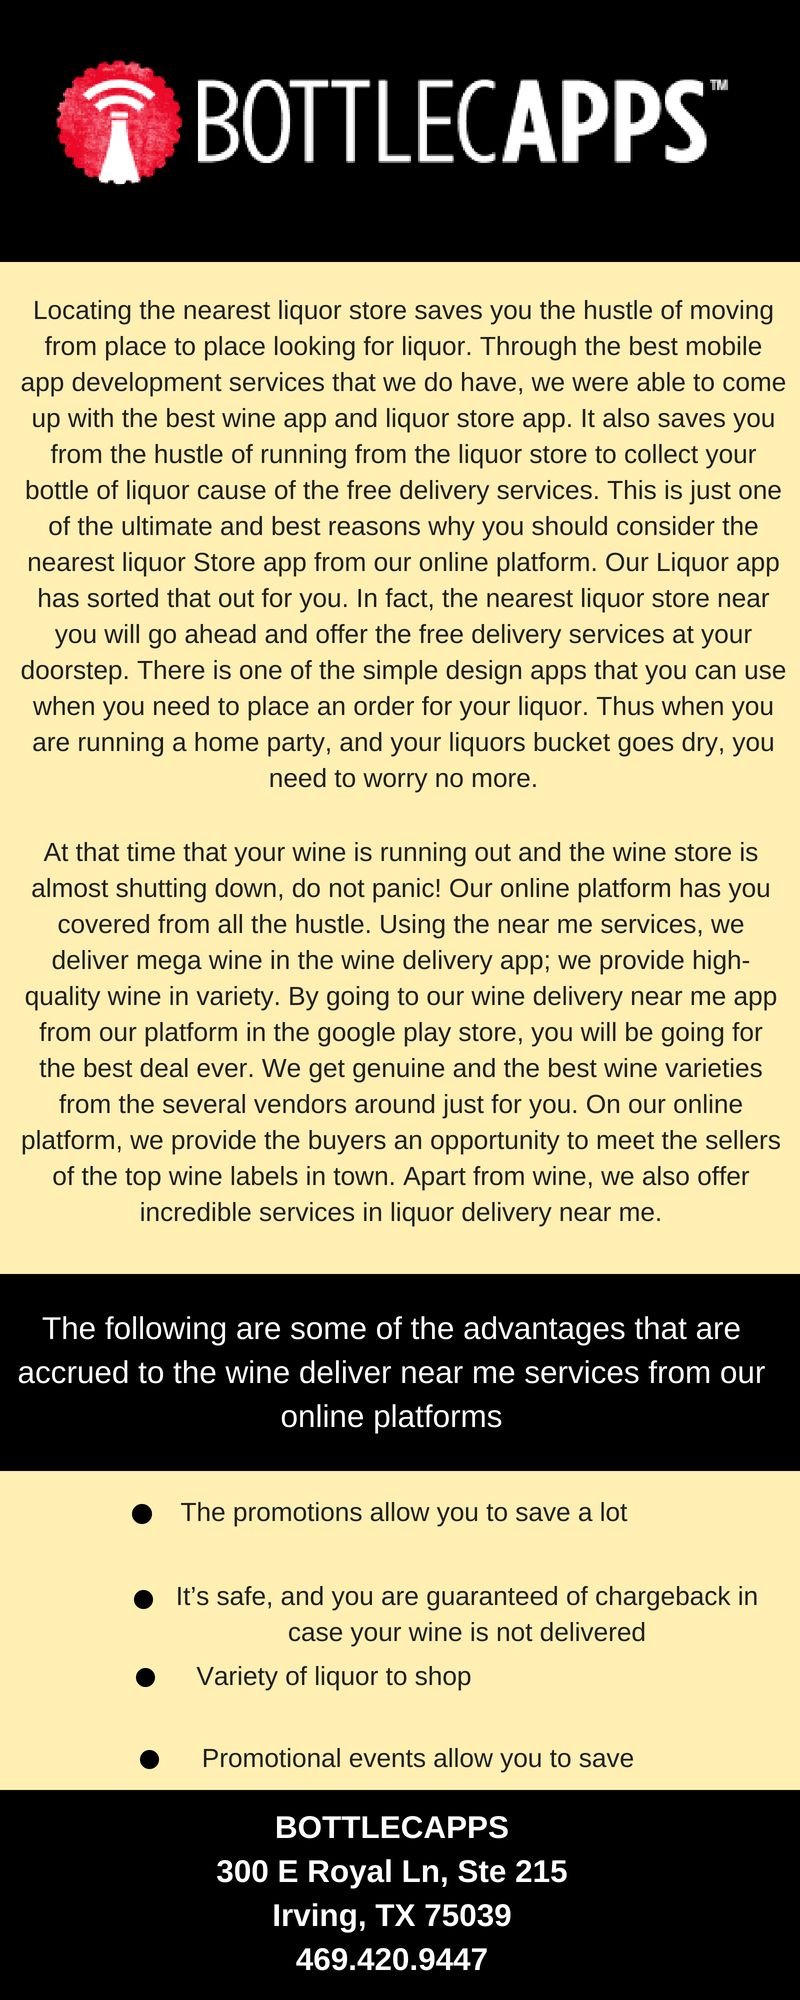 Bottlecapps Offer The Best Beer Delivery Apps For Fast And Accurate Delivery Of Beer Use Our Beer Store Apps Use Alcohol Delivery Beer Store Beer Liquor Store